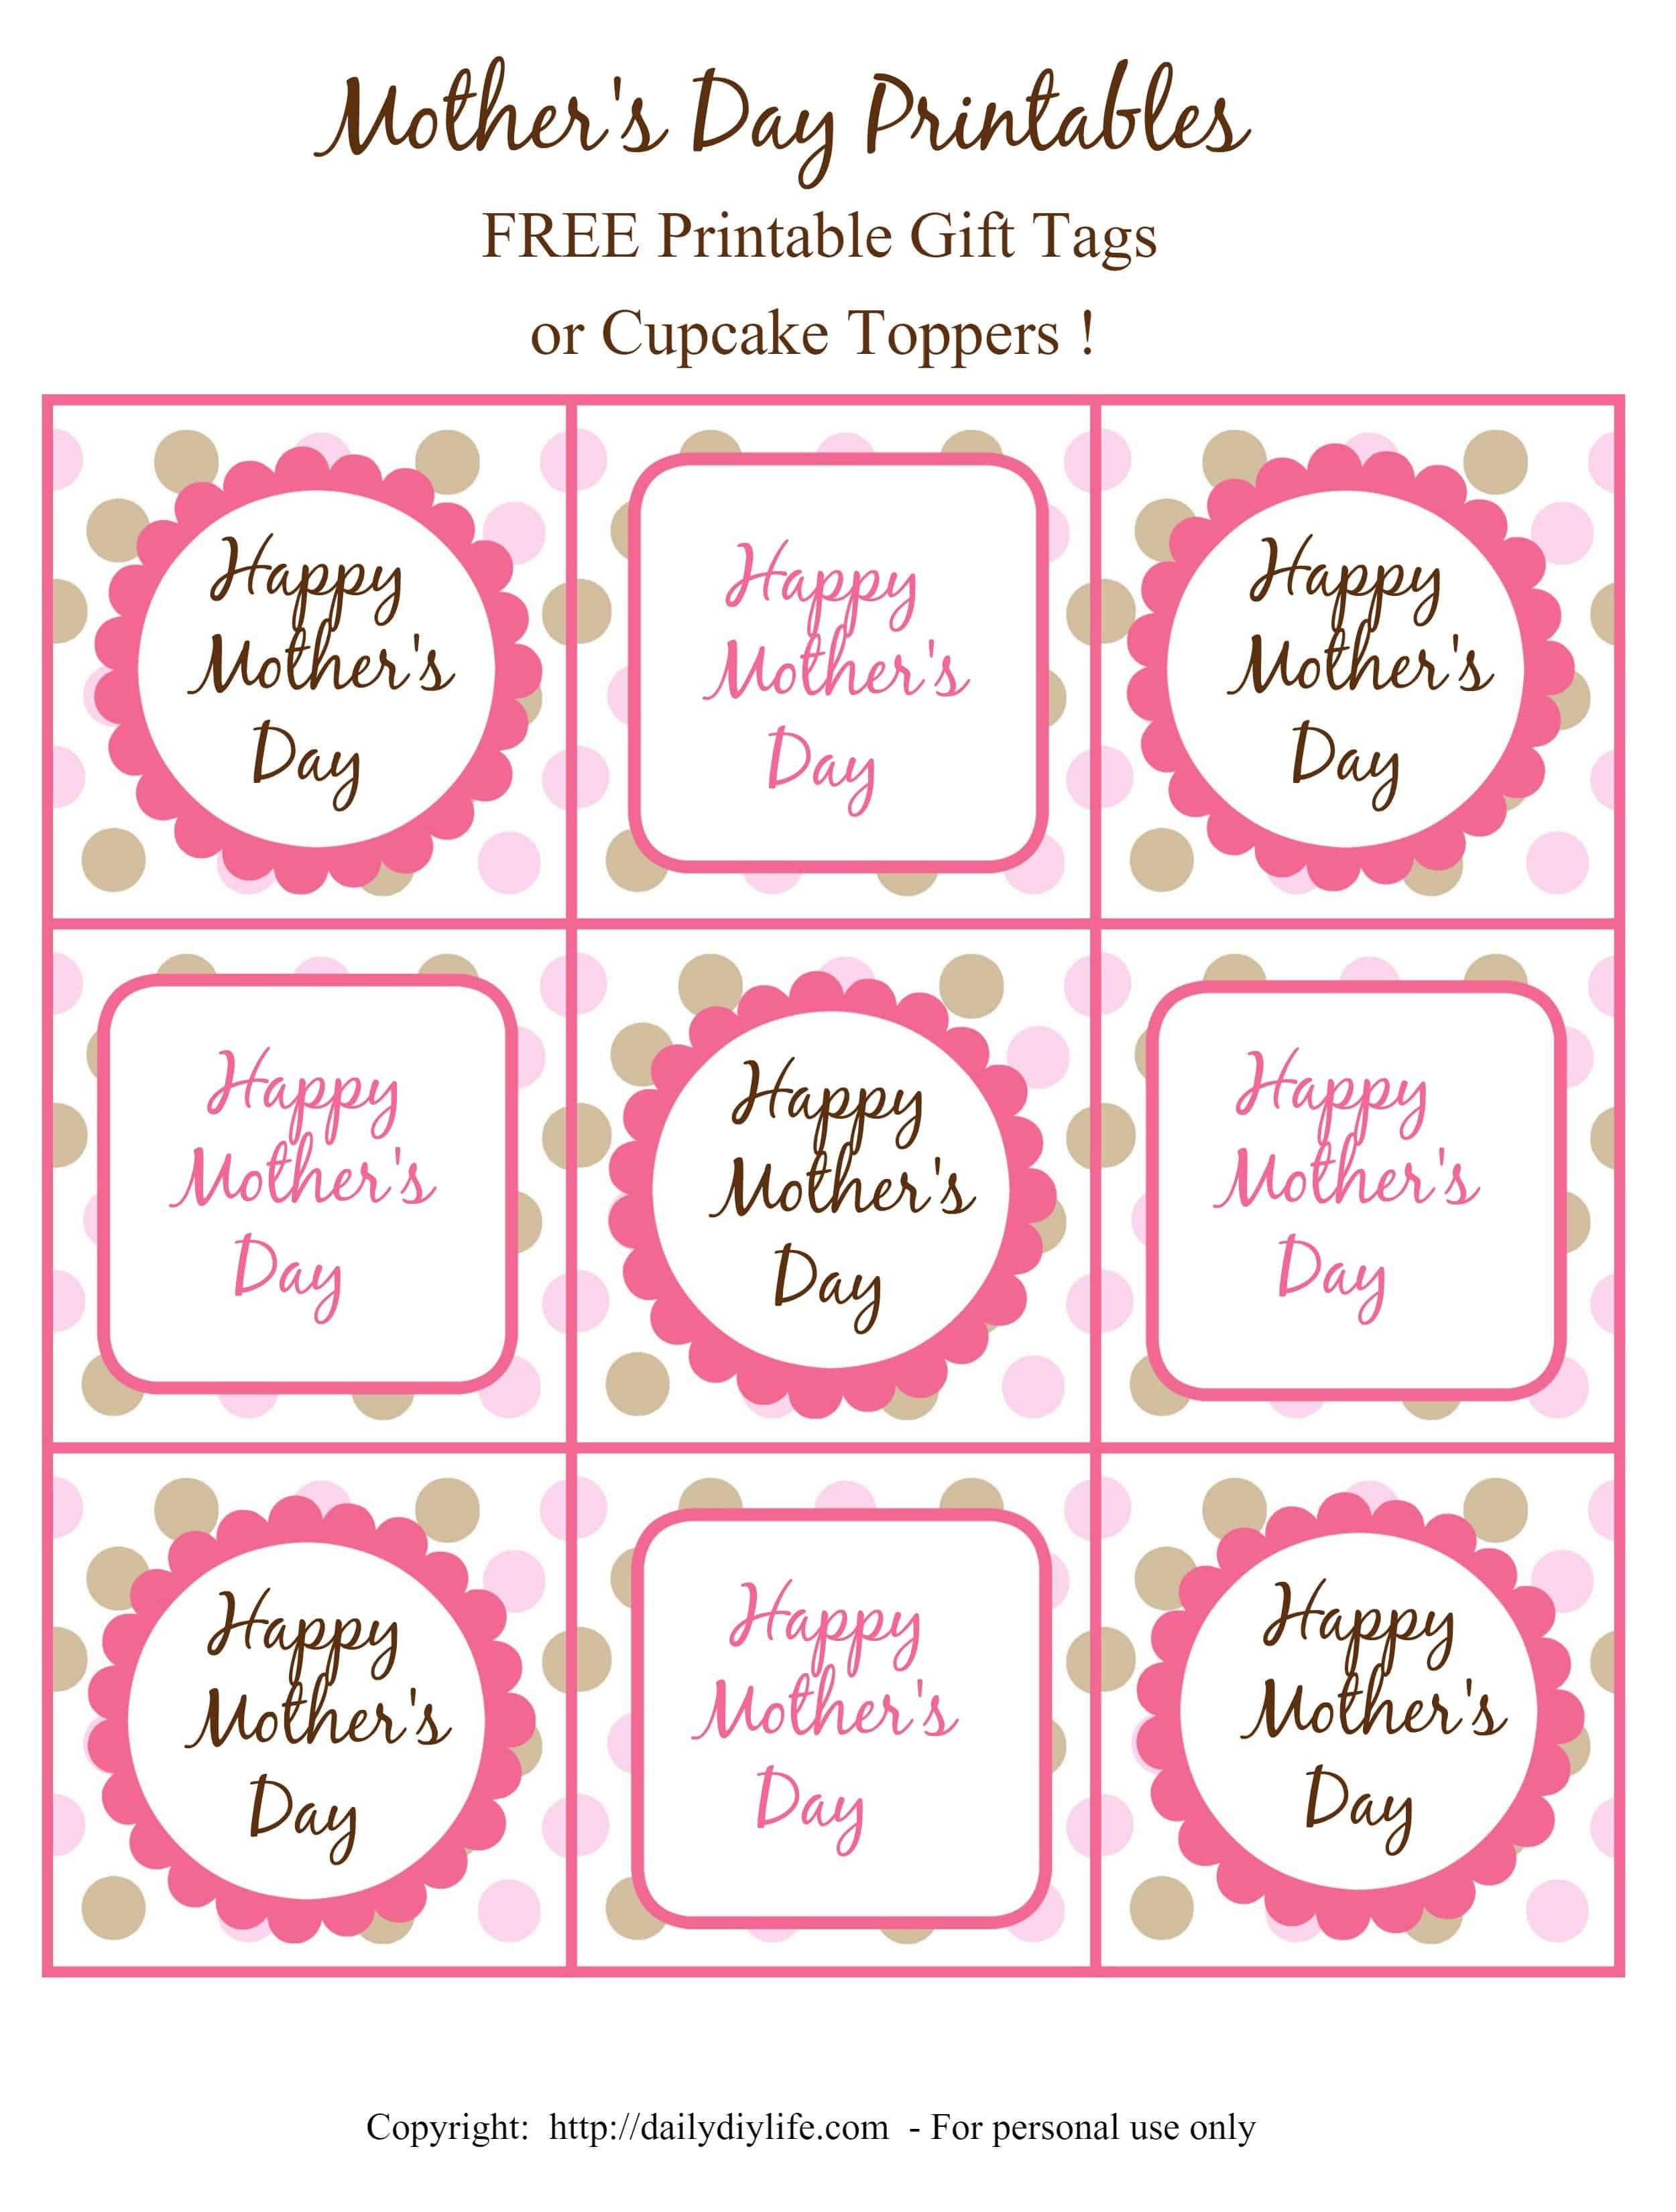 Free Printable Favor Tags Mother S Day Free Printable Gift Tags or Cupcake toppers